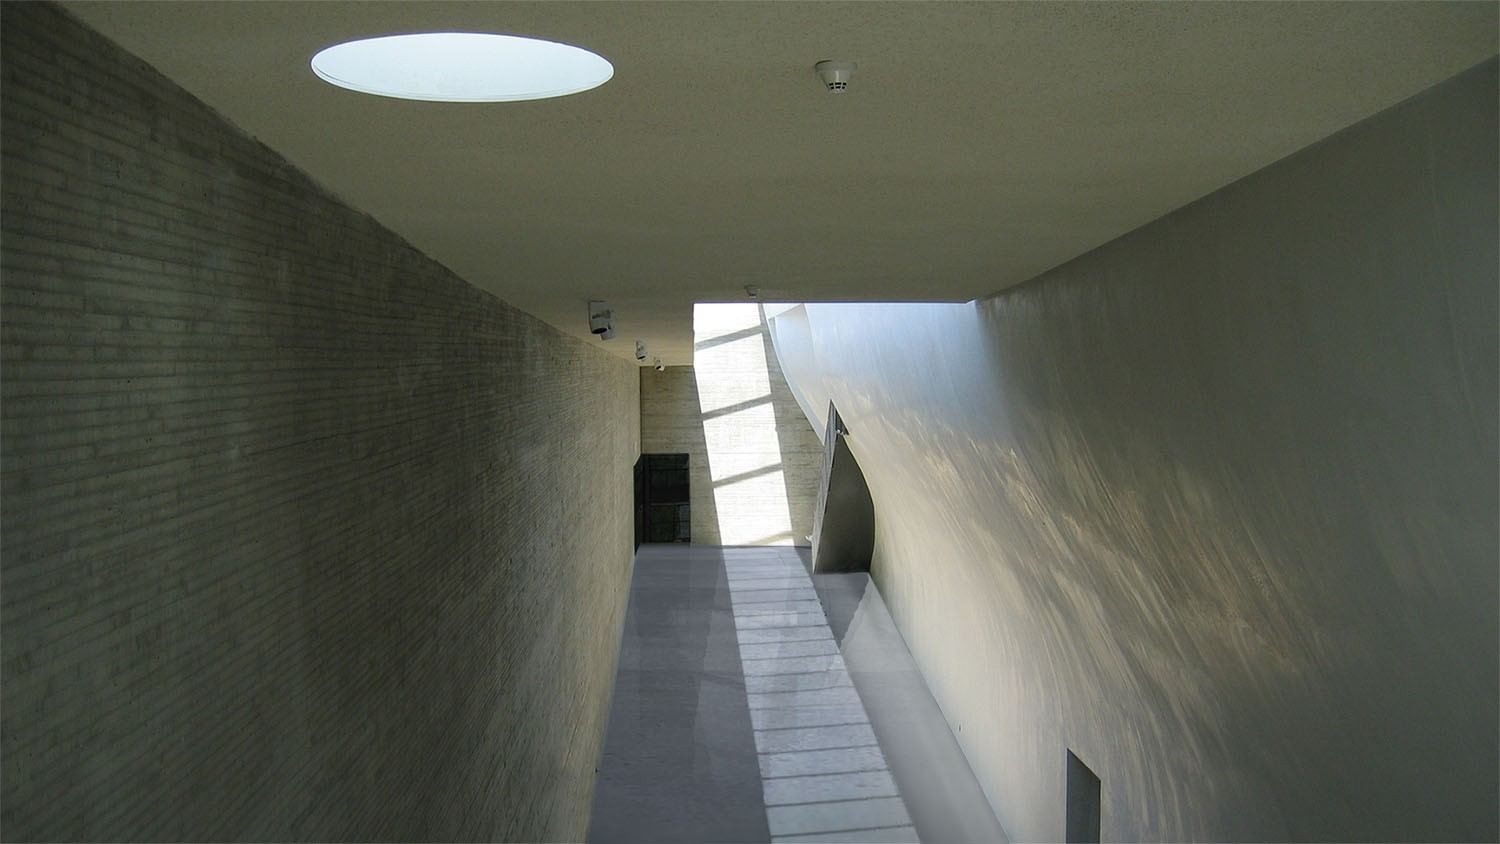 https://s3.us-east-2.amazonaws.com/steven-holl/uploads/projects/project-images/StevenHollArchitects_Whitney_Interior3_WH.jpg